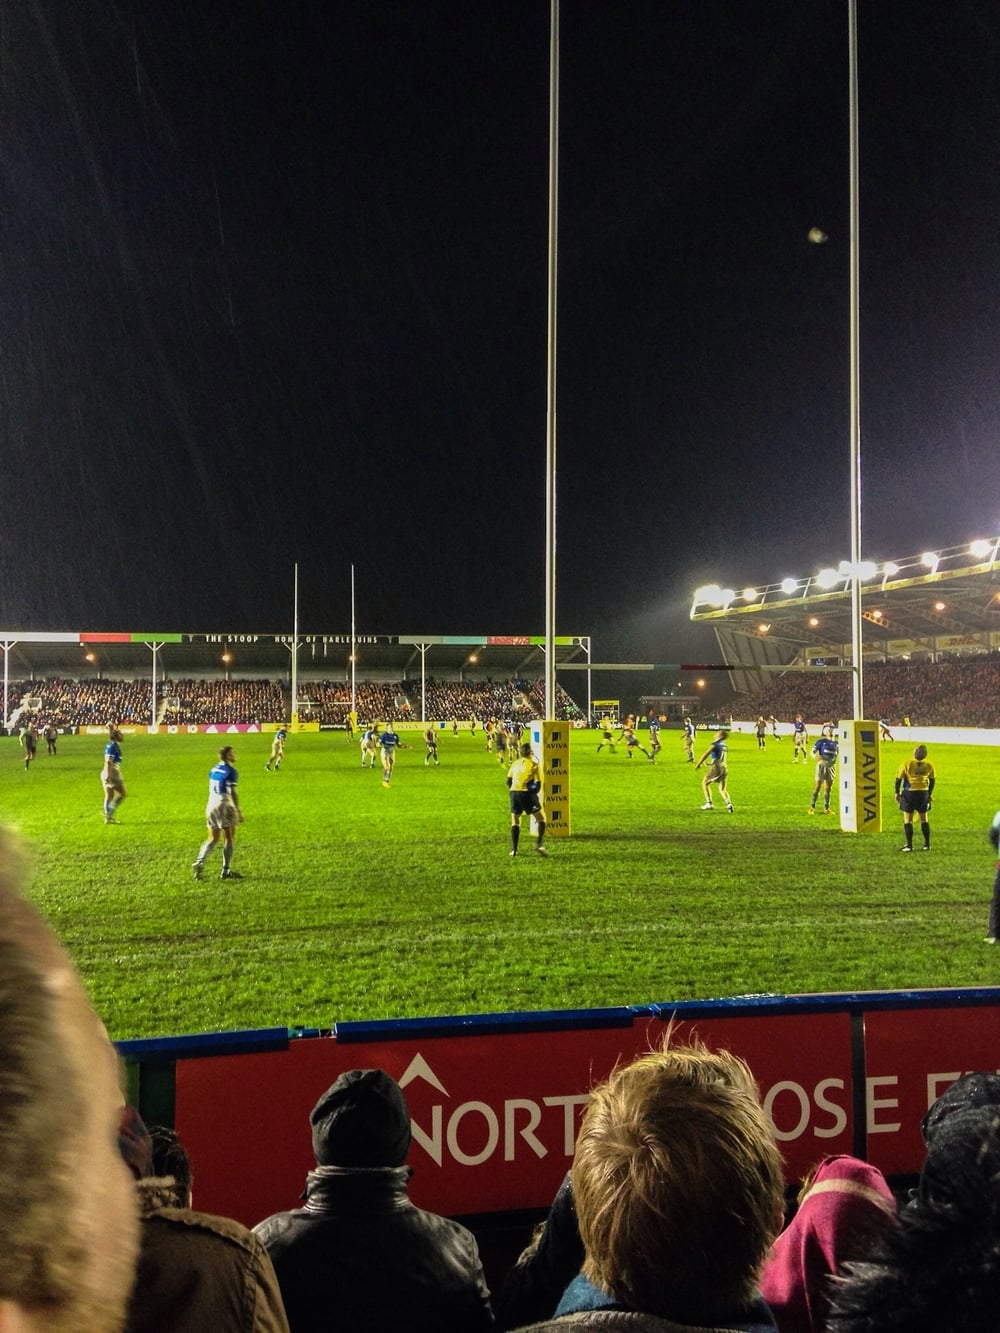 Ben Botica's penalty kick gave Harlequins a lead they would not surrender in my first ever live match.